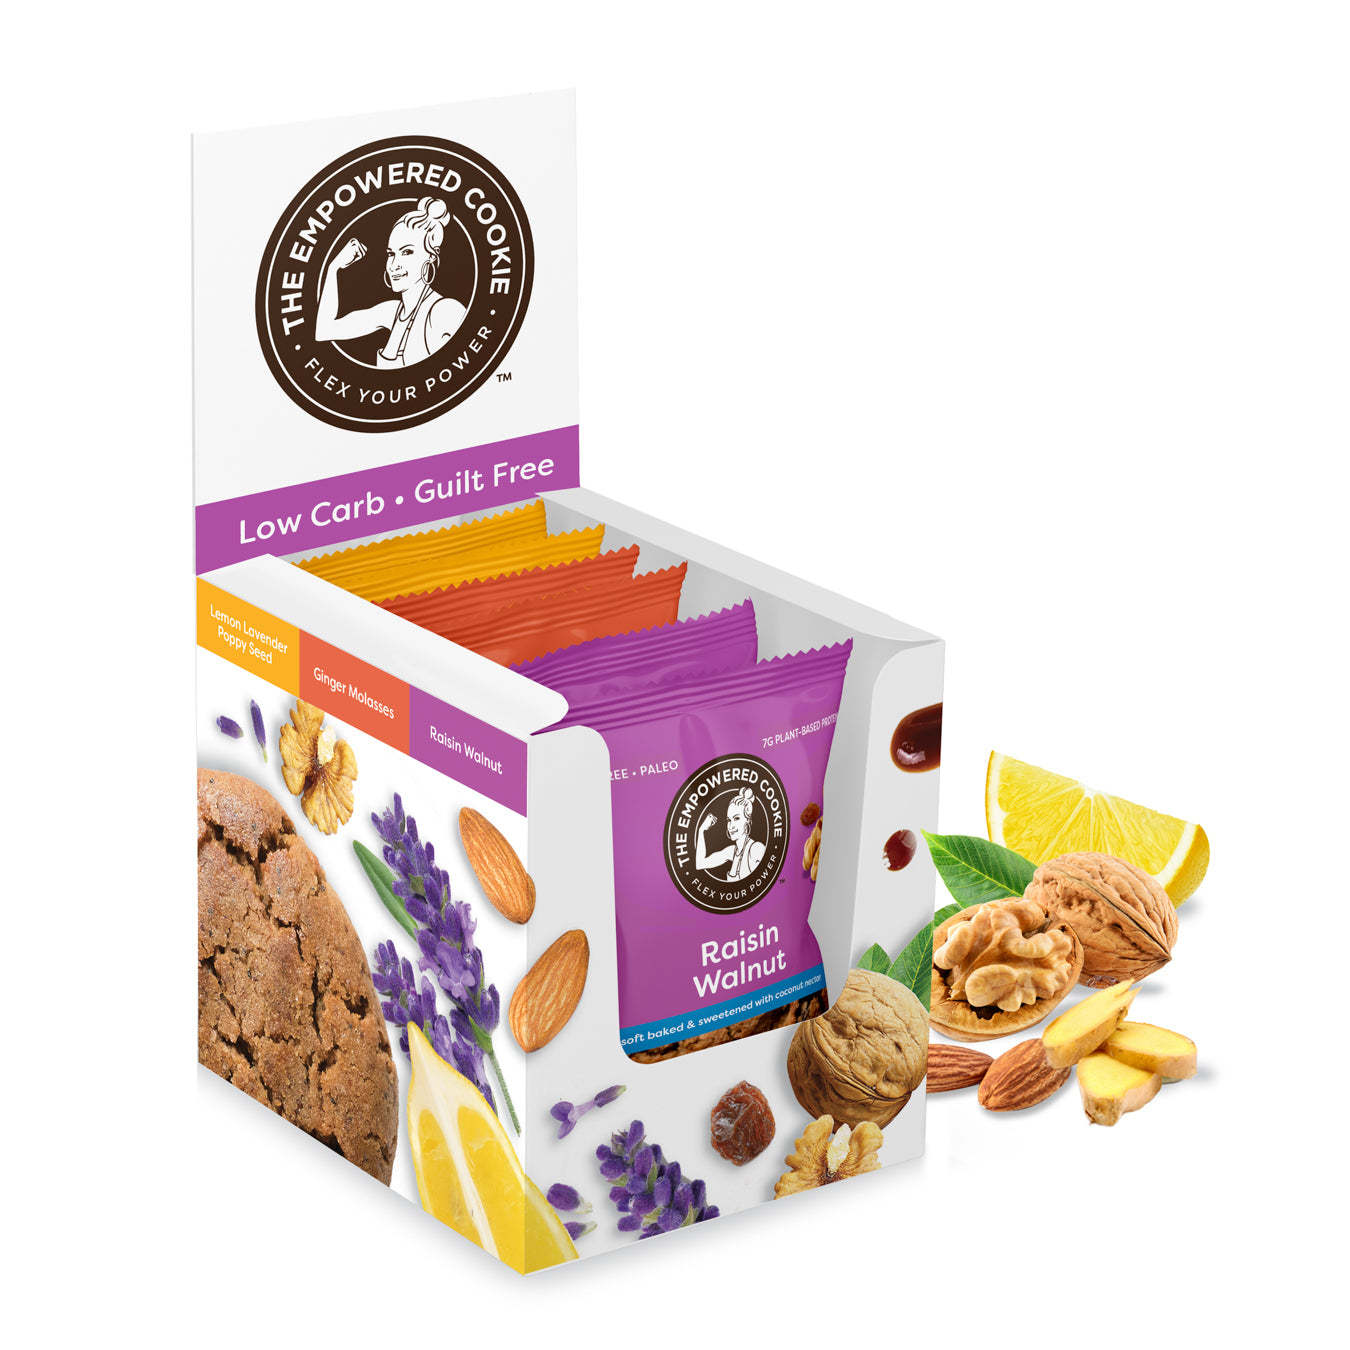 Variety Pack: Fruity and Floral (6 Count)